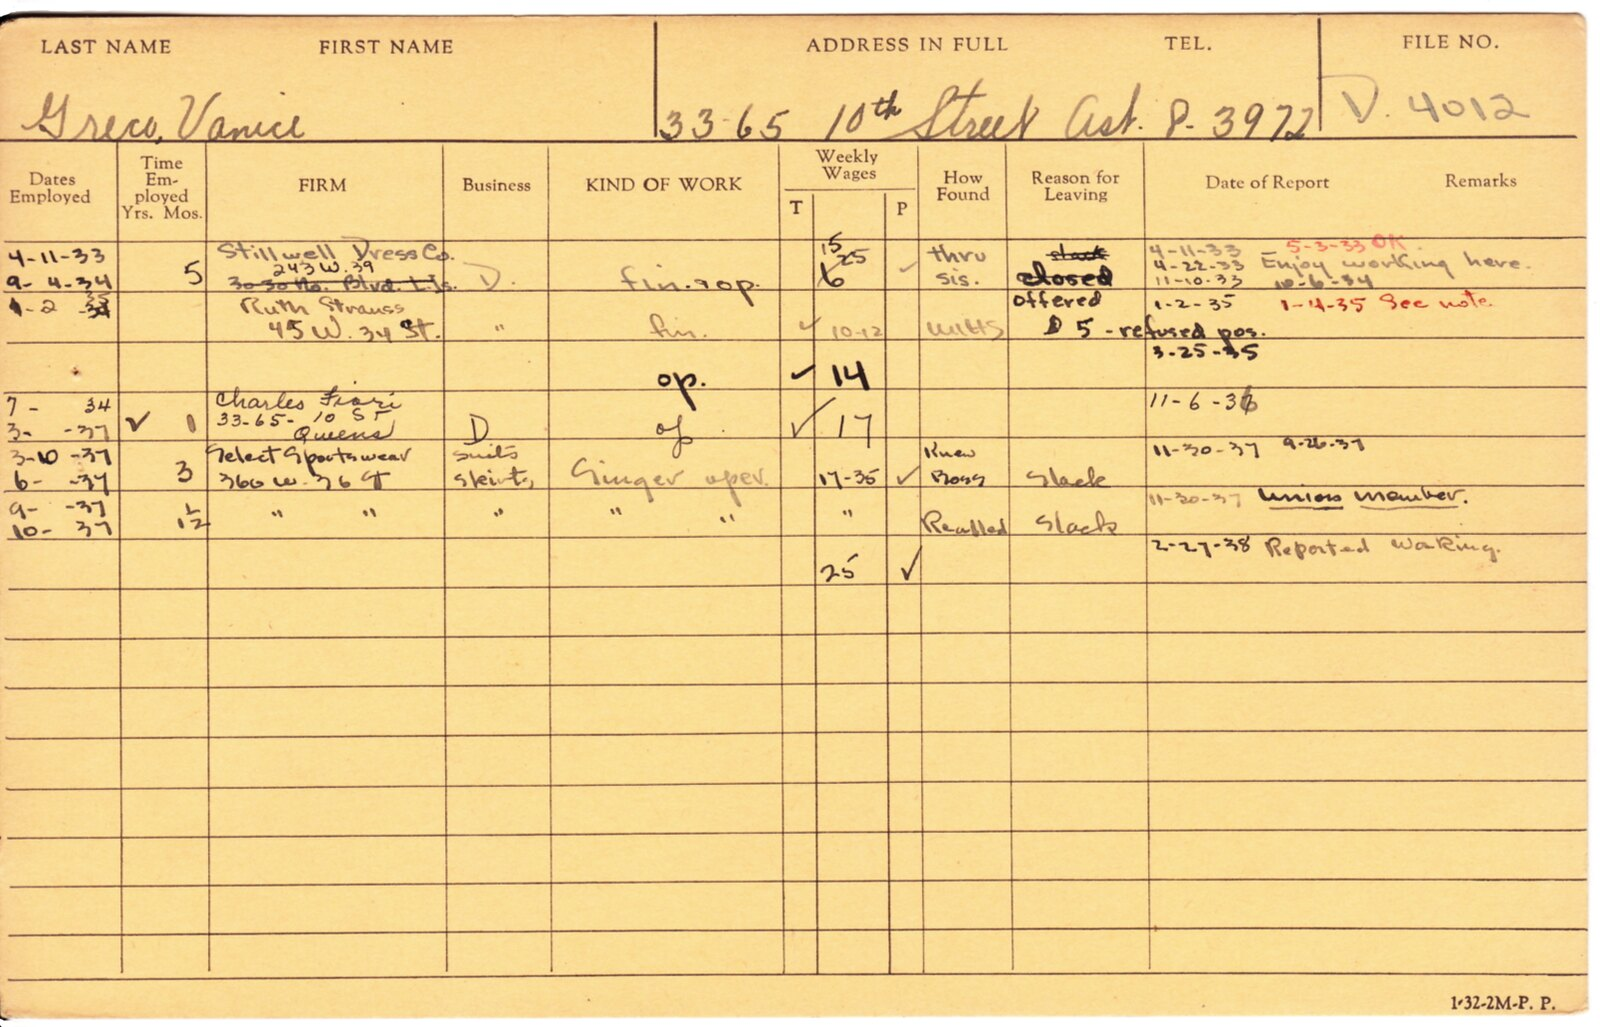 permanent record 2014 the card indicates that vanice went to work for her on jan 2 1935 but under reason for leaving